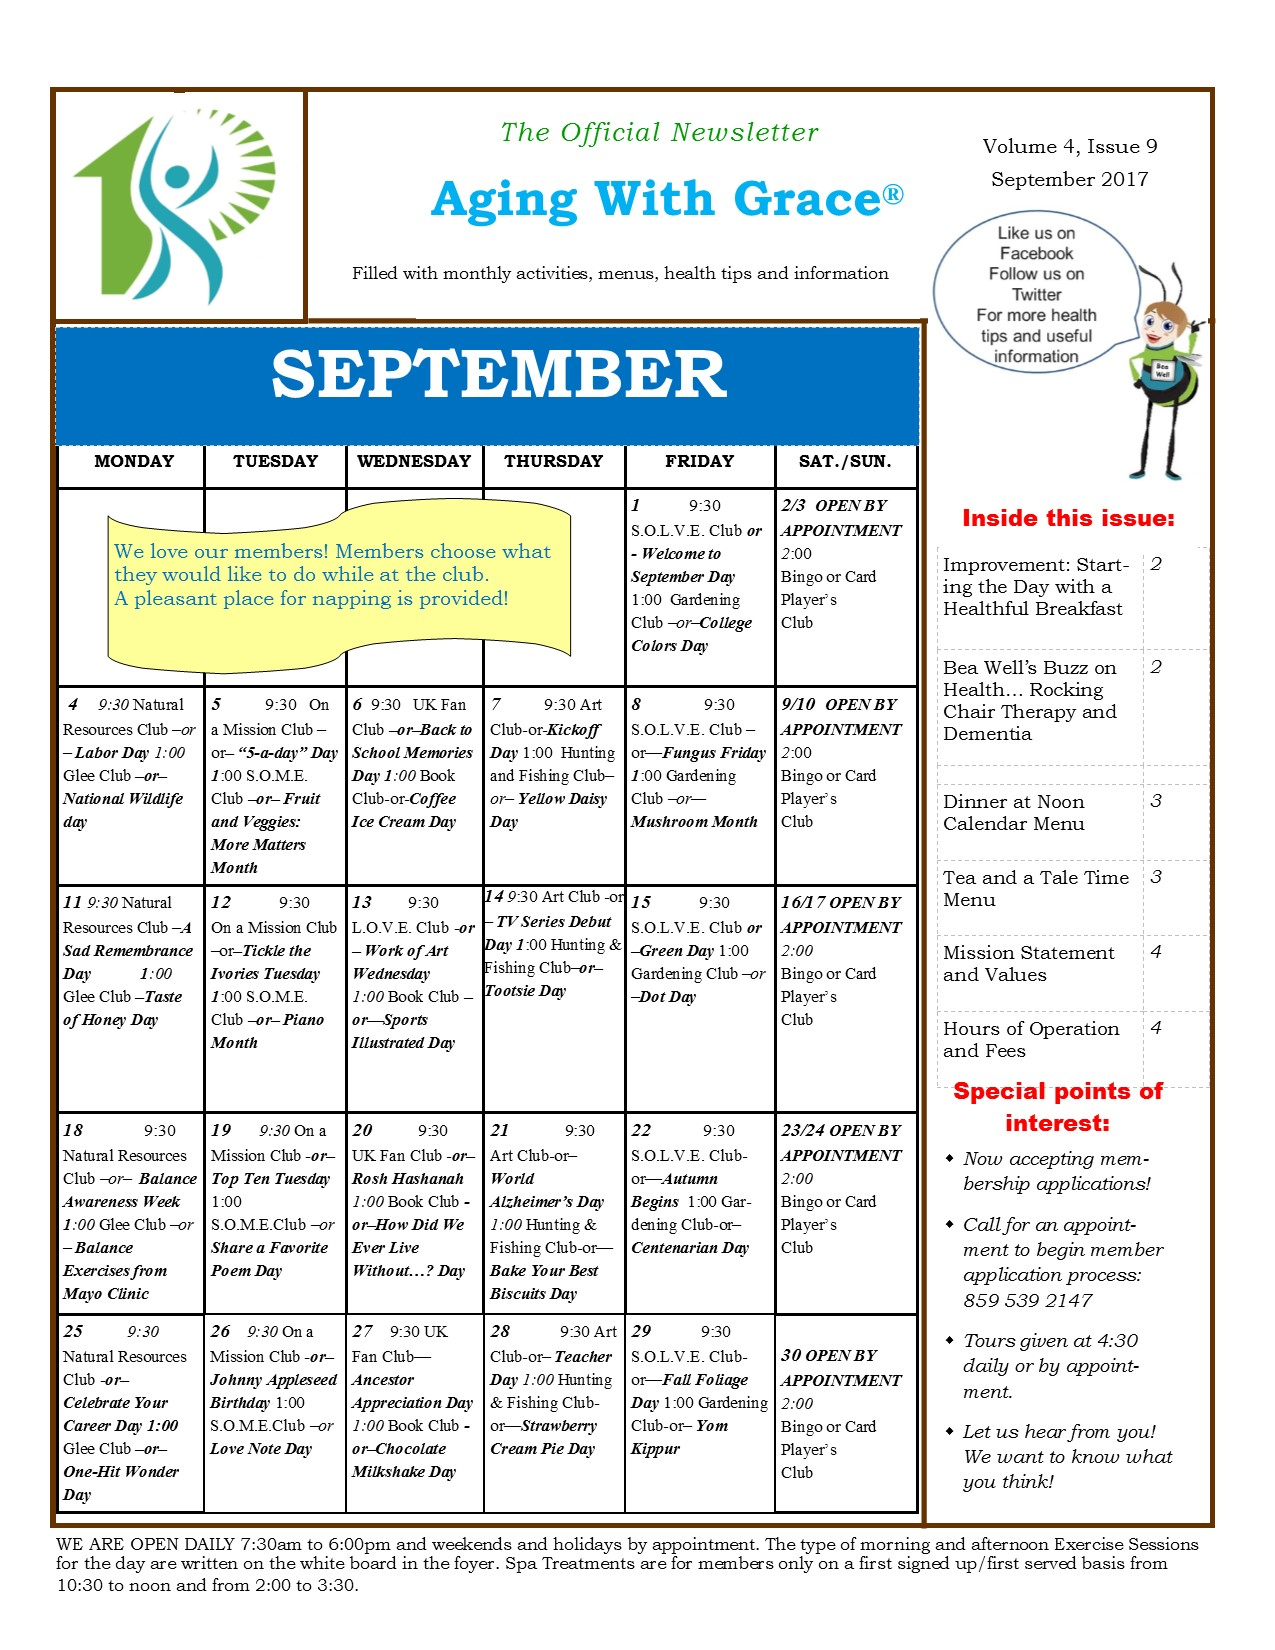 Aging With Grace Newsletter September 2017